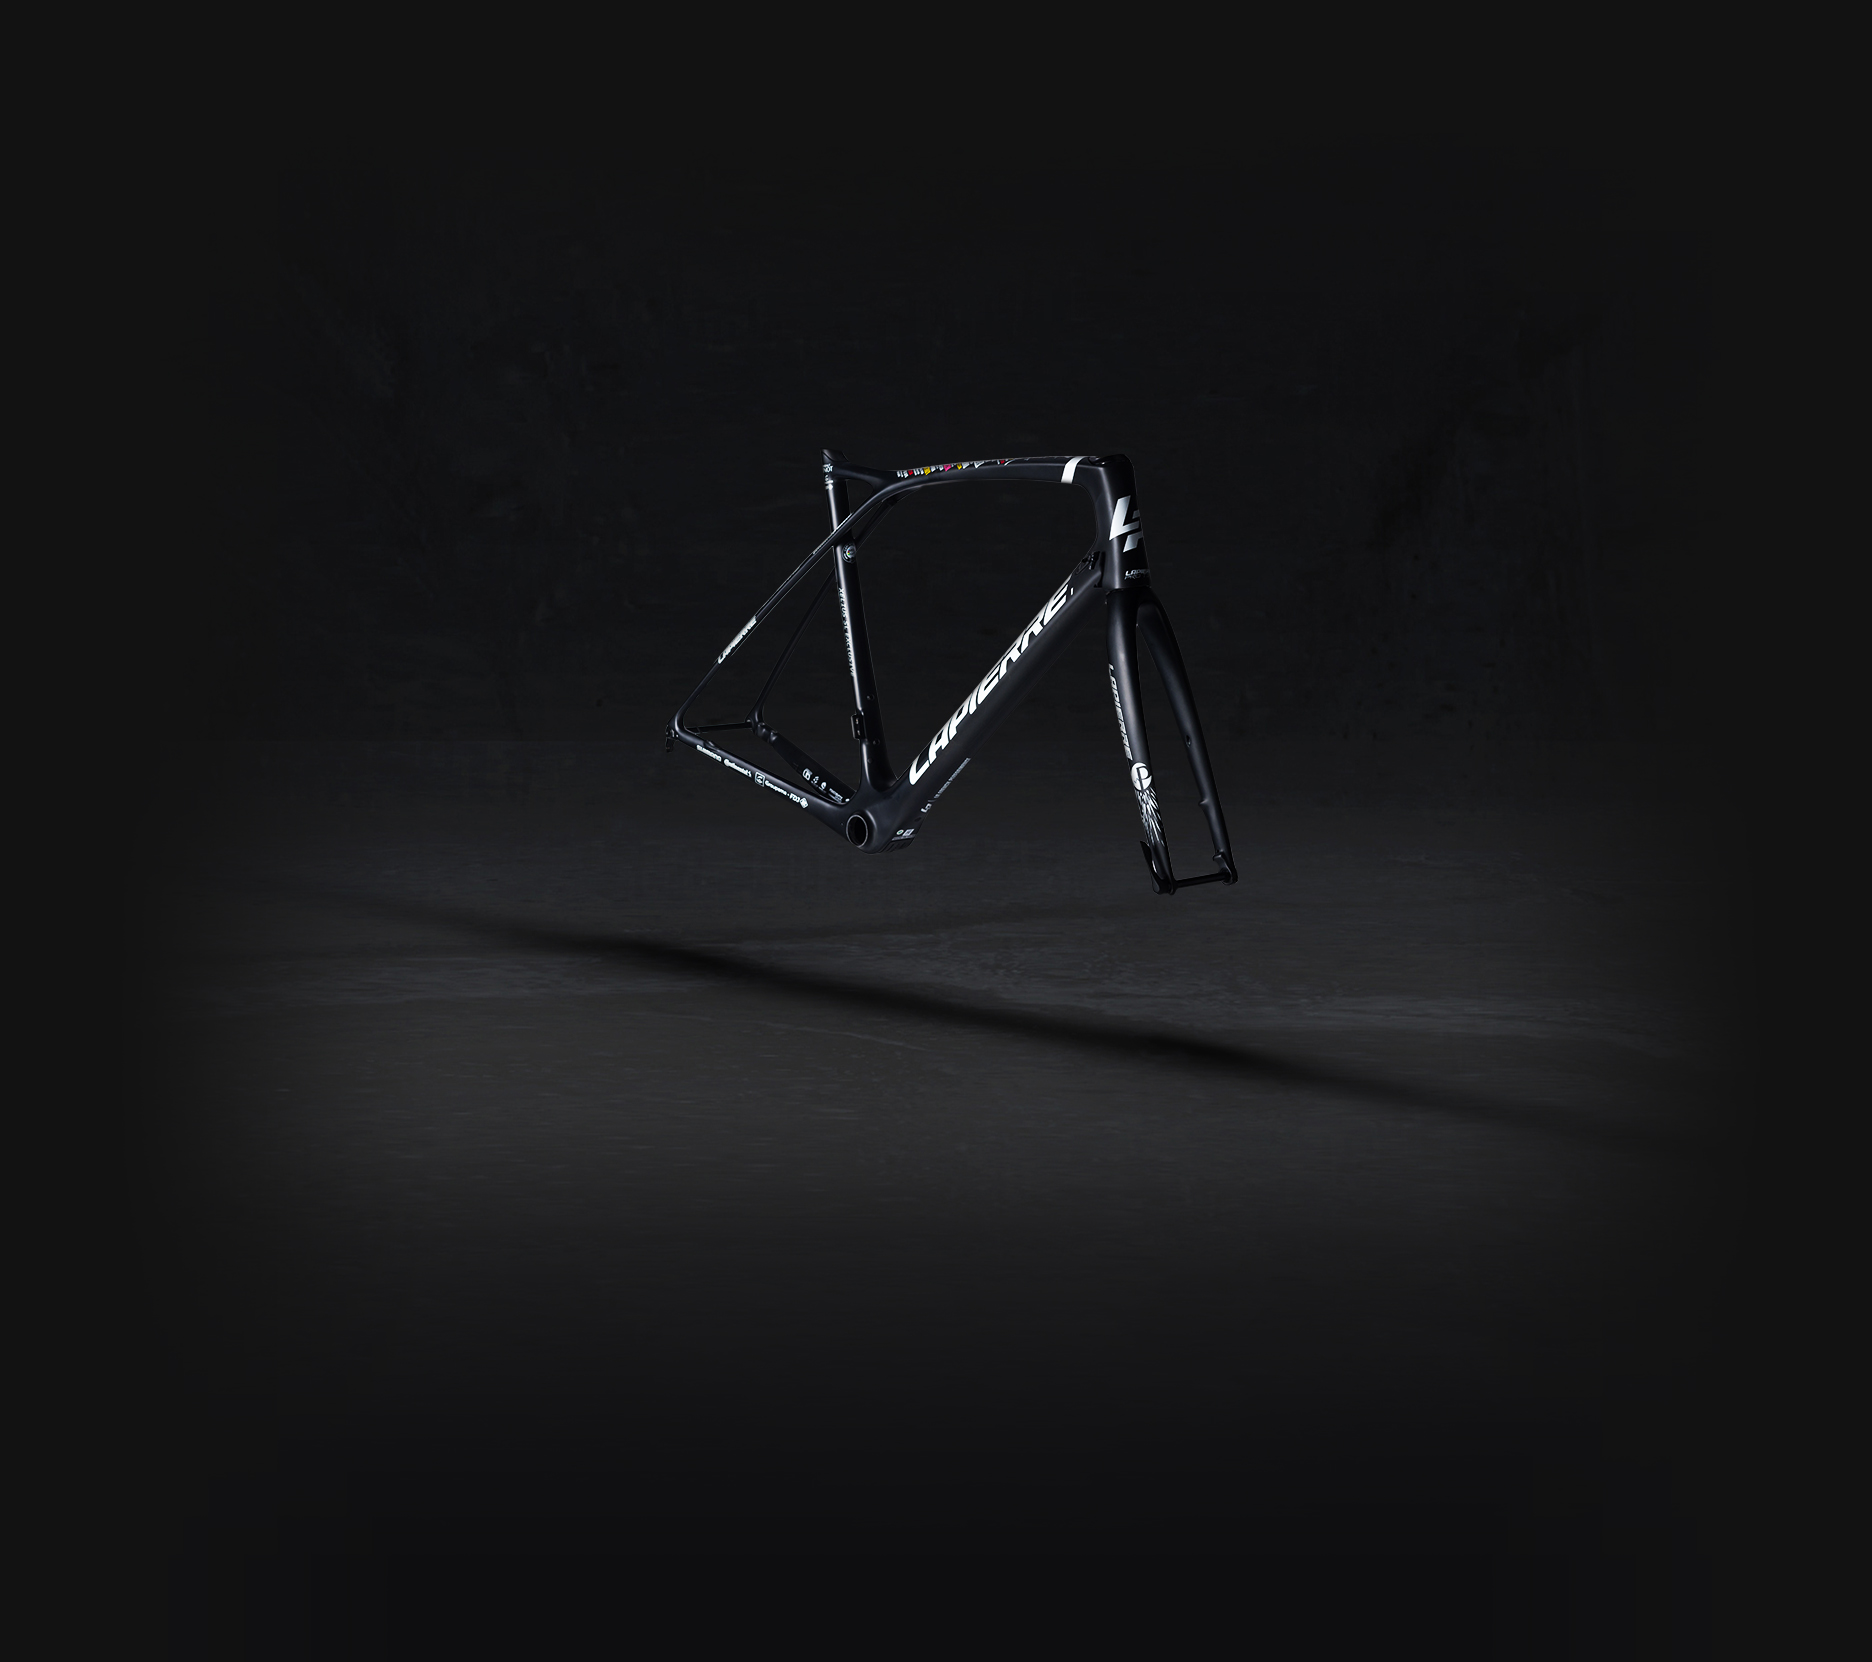 Lapierre Xelius SL Pinot frame kit three-quarter front right side view on a black background